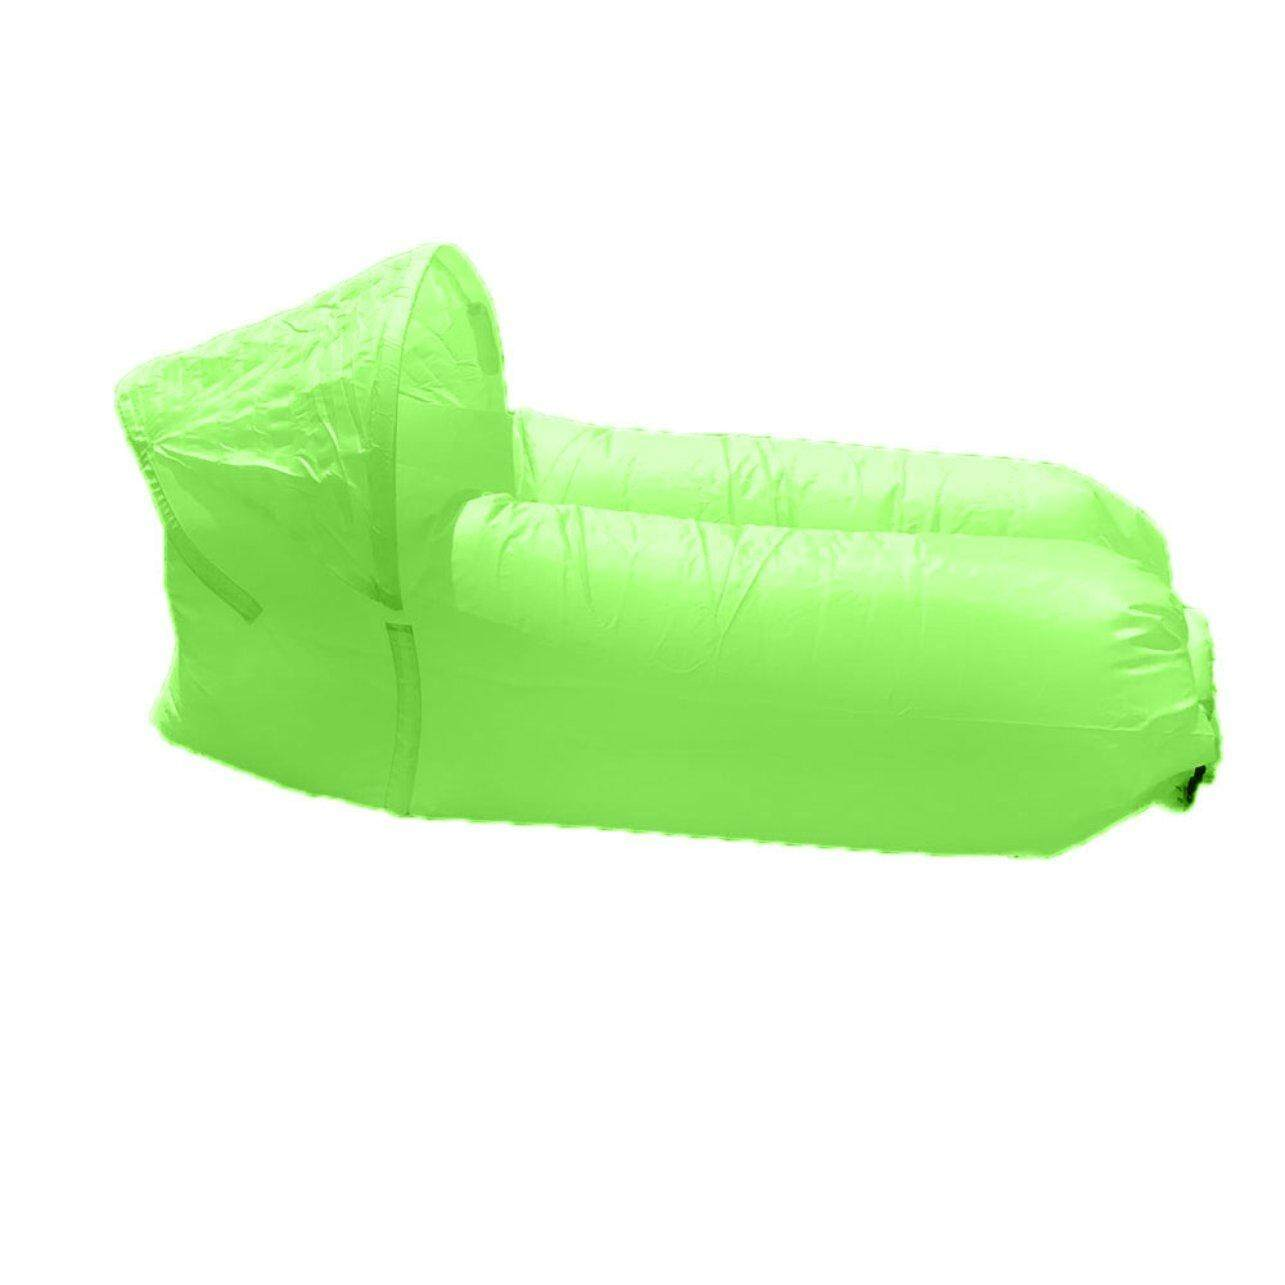 Hot Sales Portable Travel Lying Bed Lazy Air Cushion Inflatable sofa camping sleeping